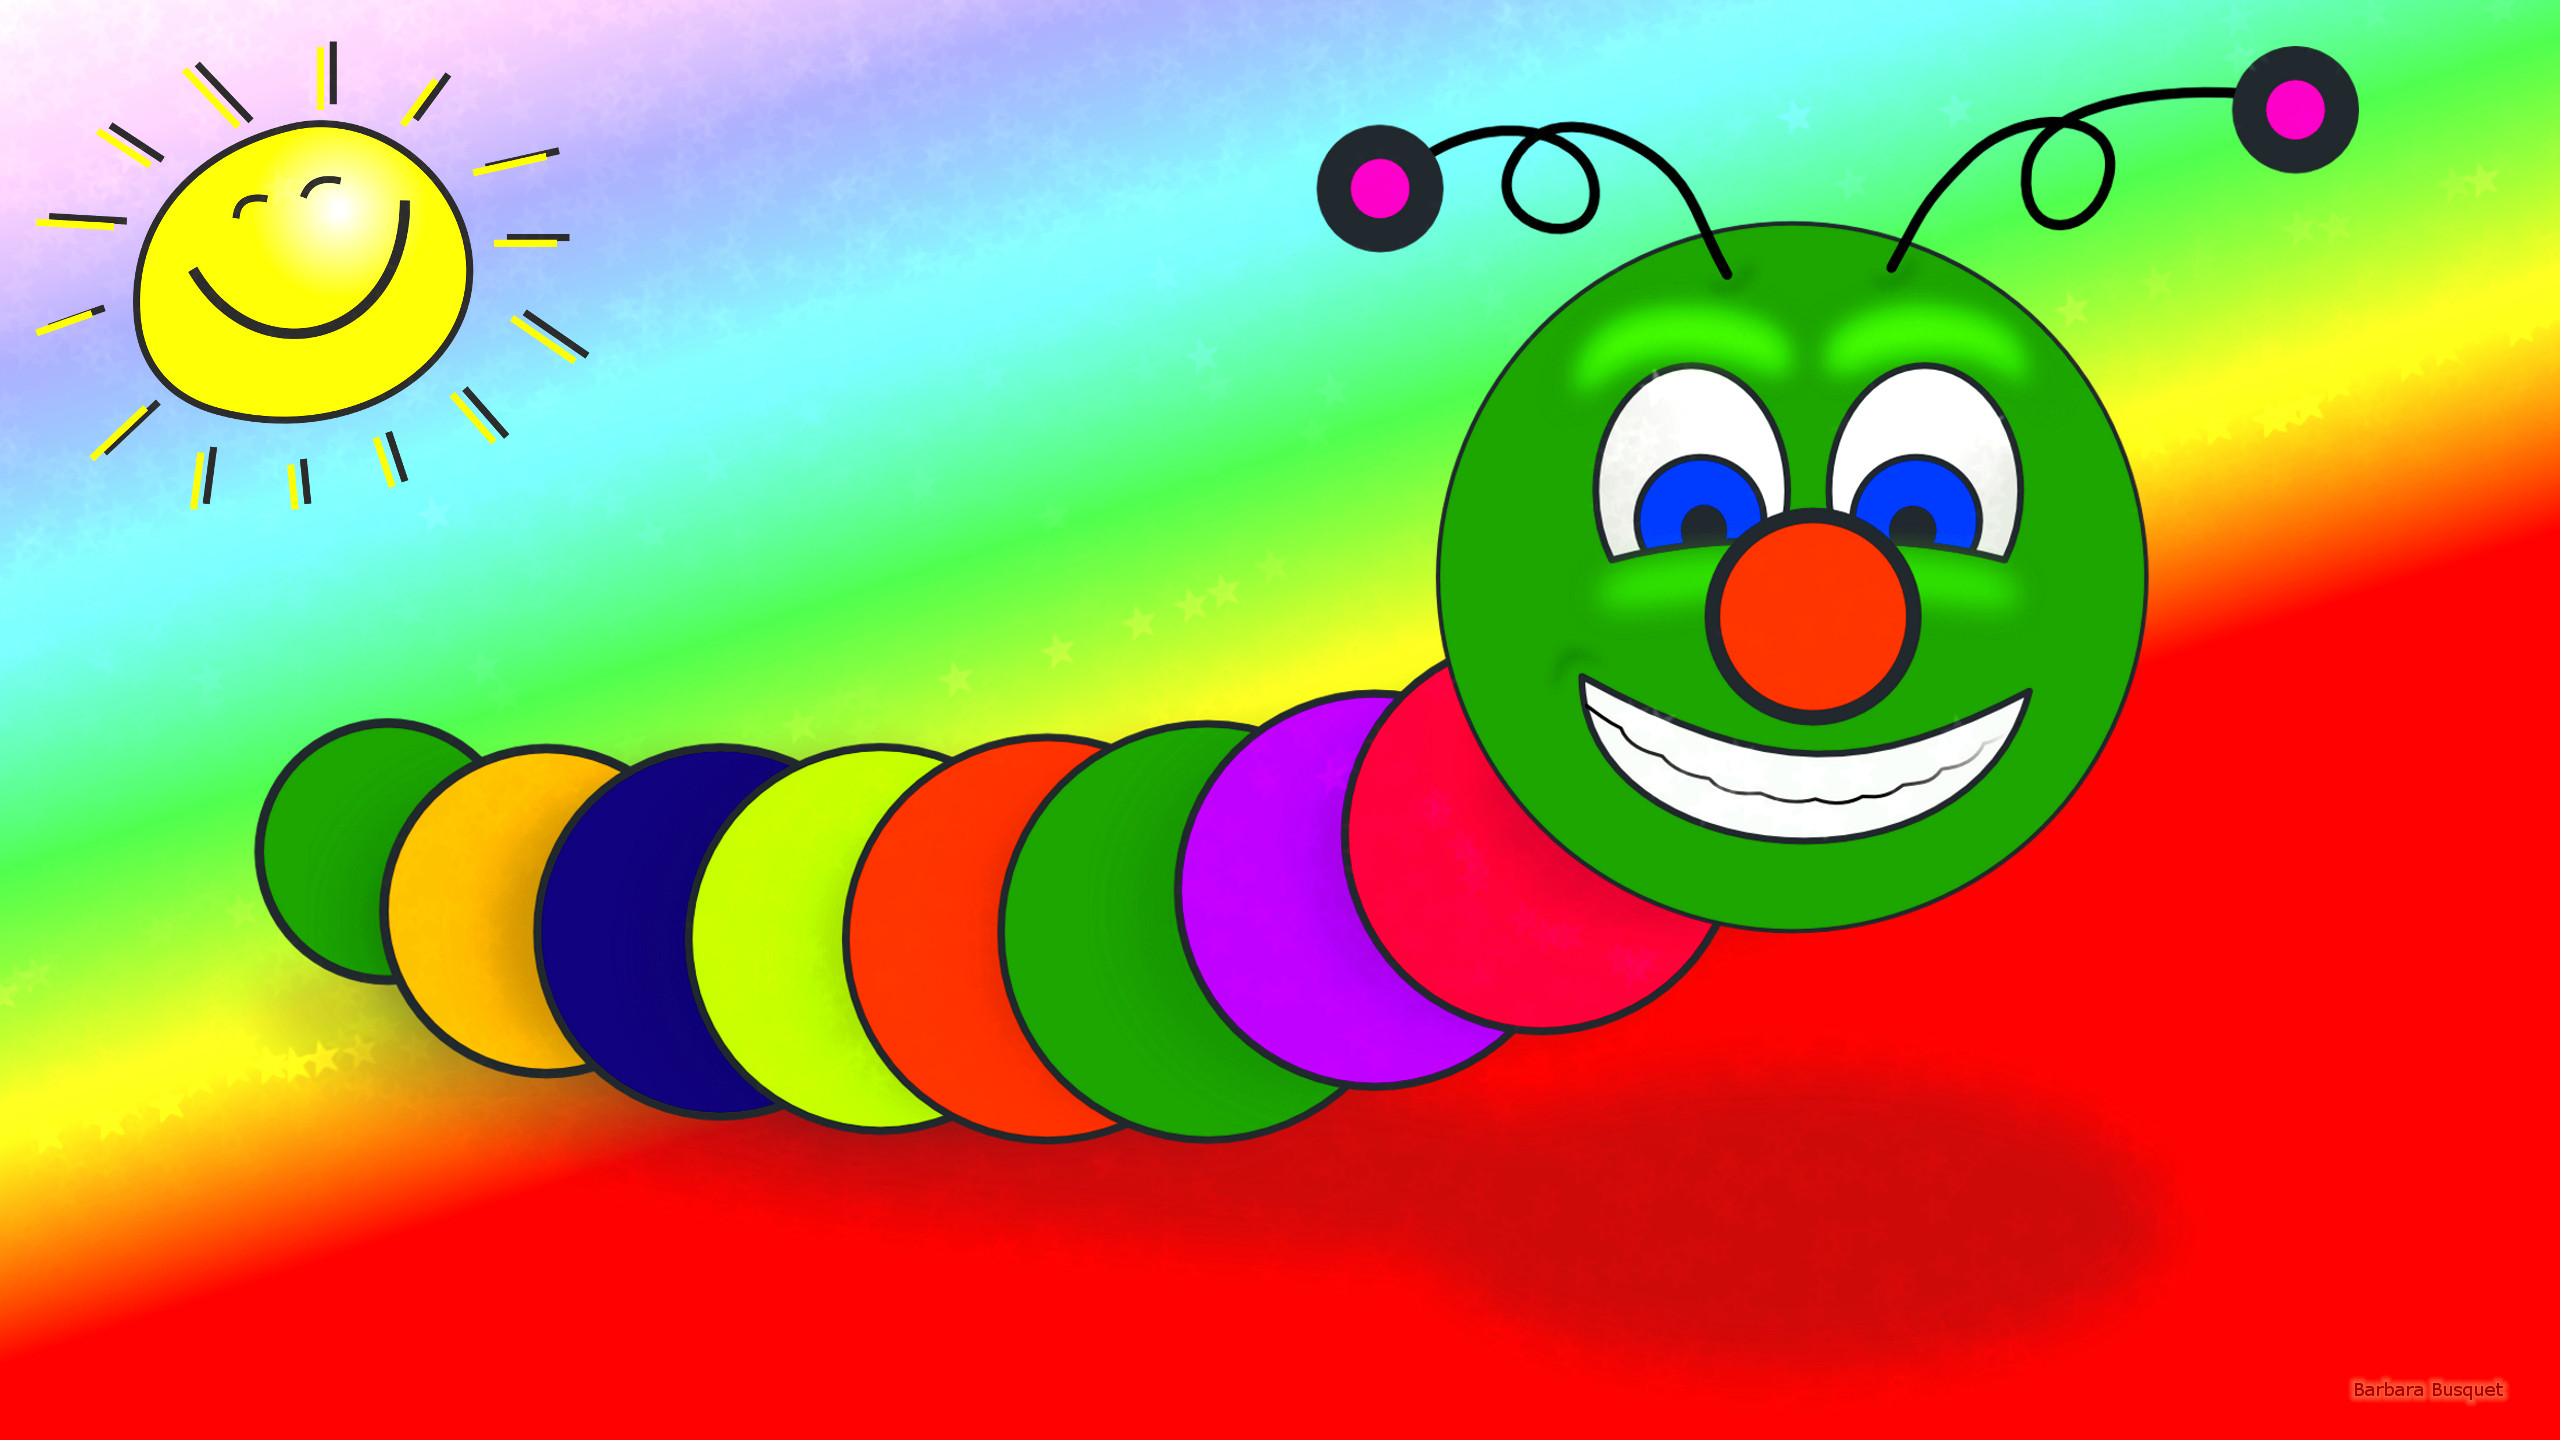 Funny wallpaper with worm Barbaras HD Wallpapers 2560x1440